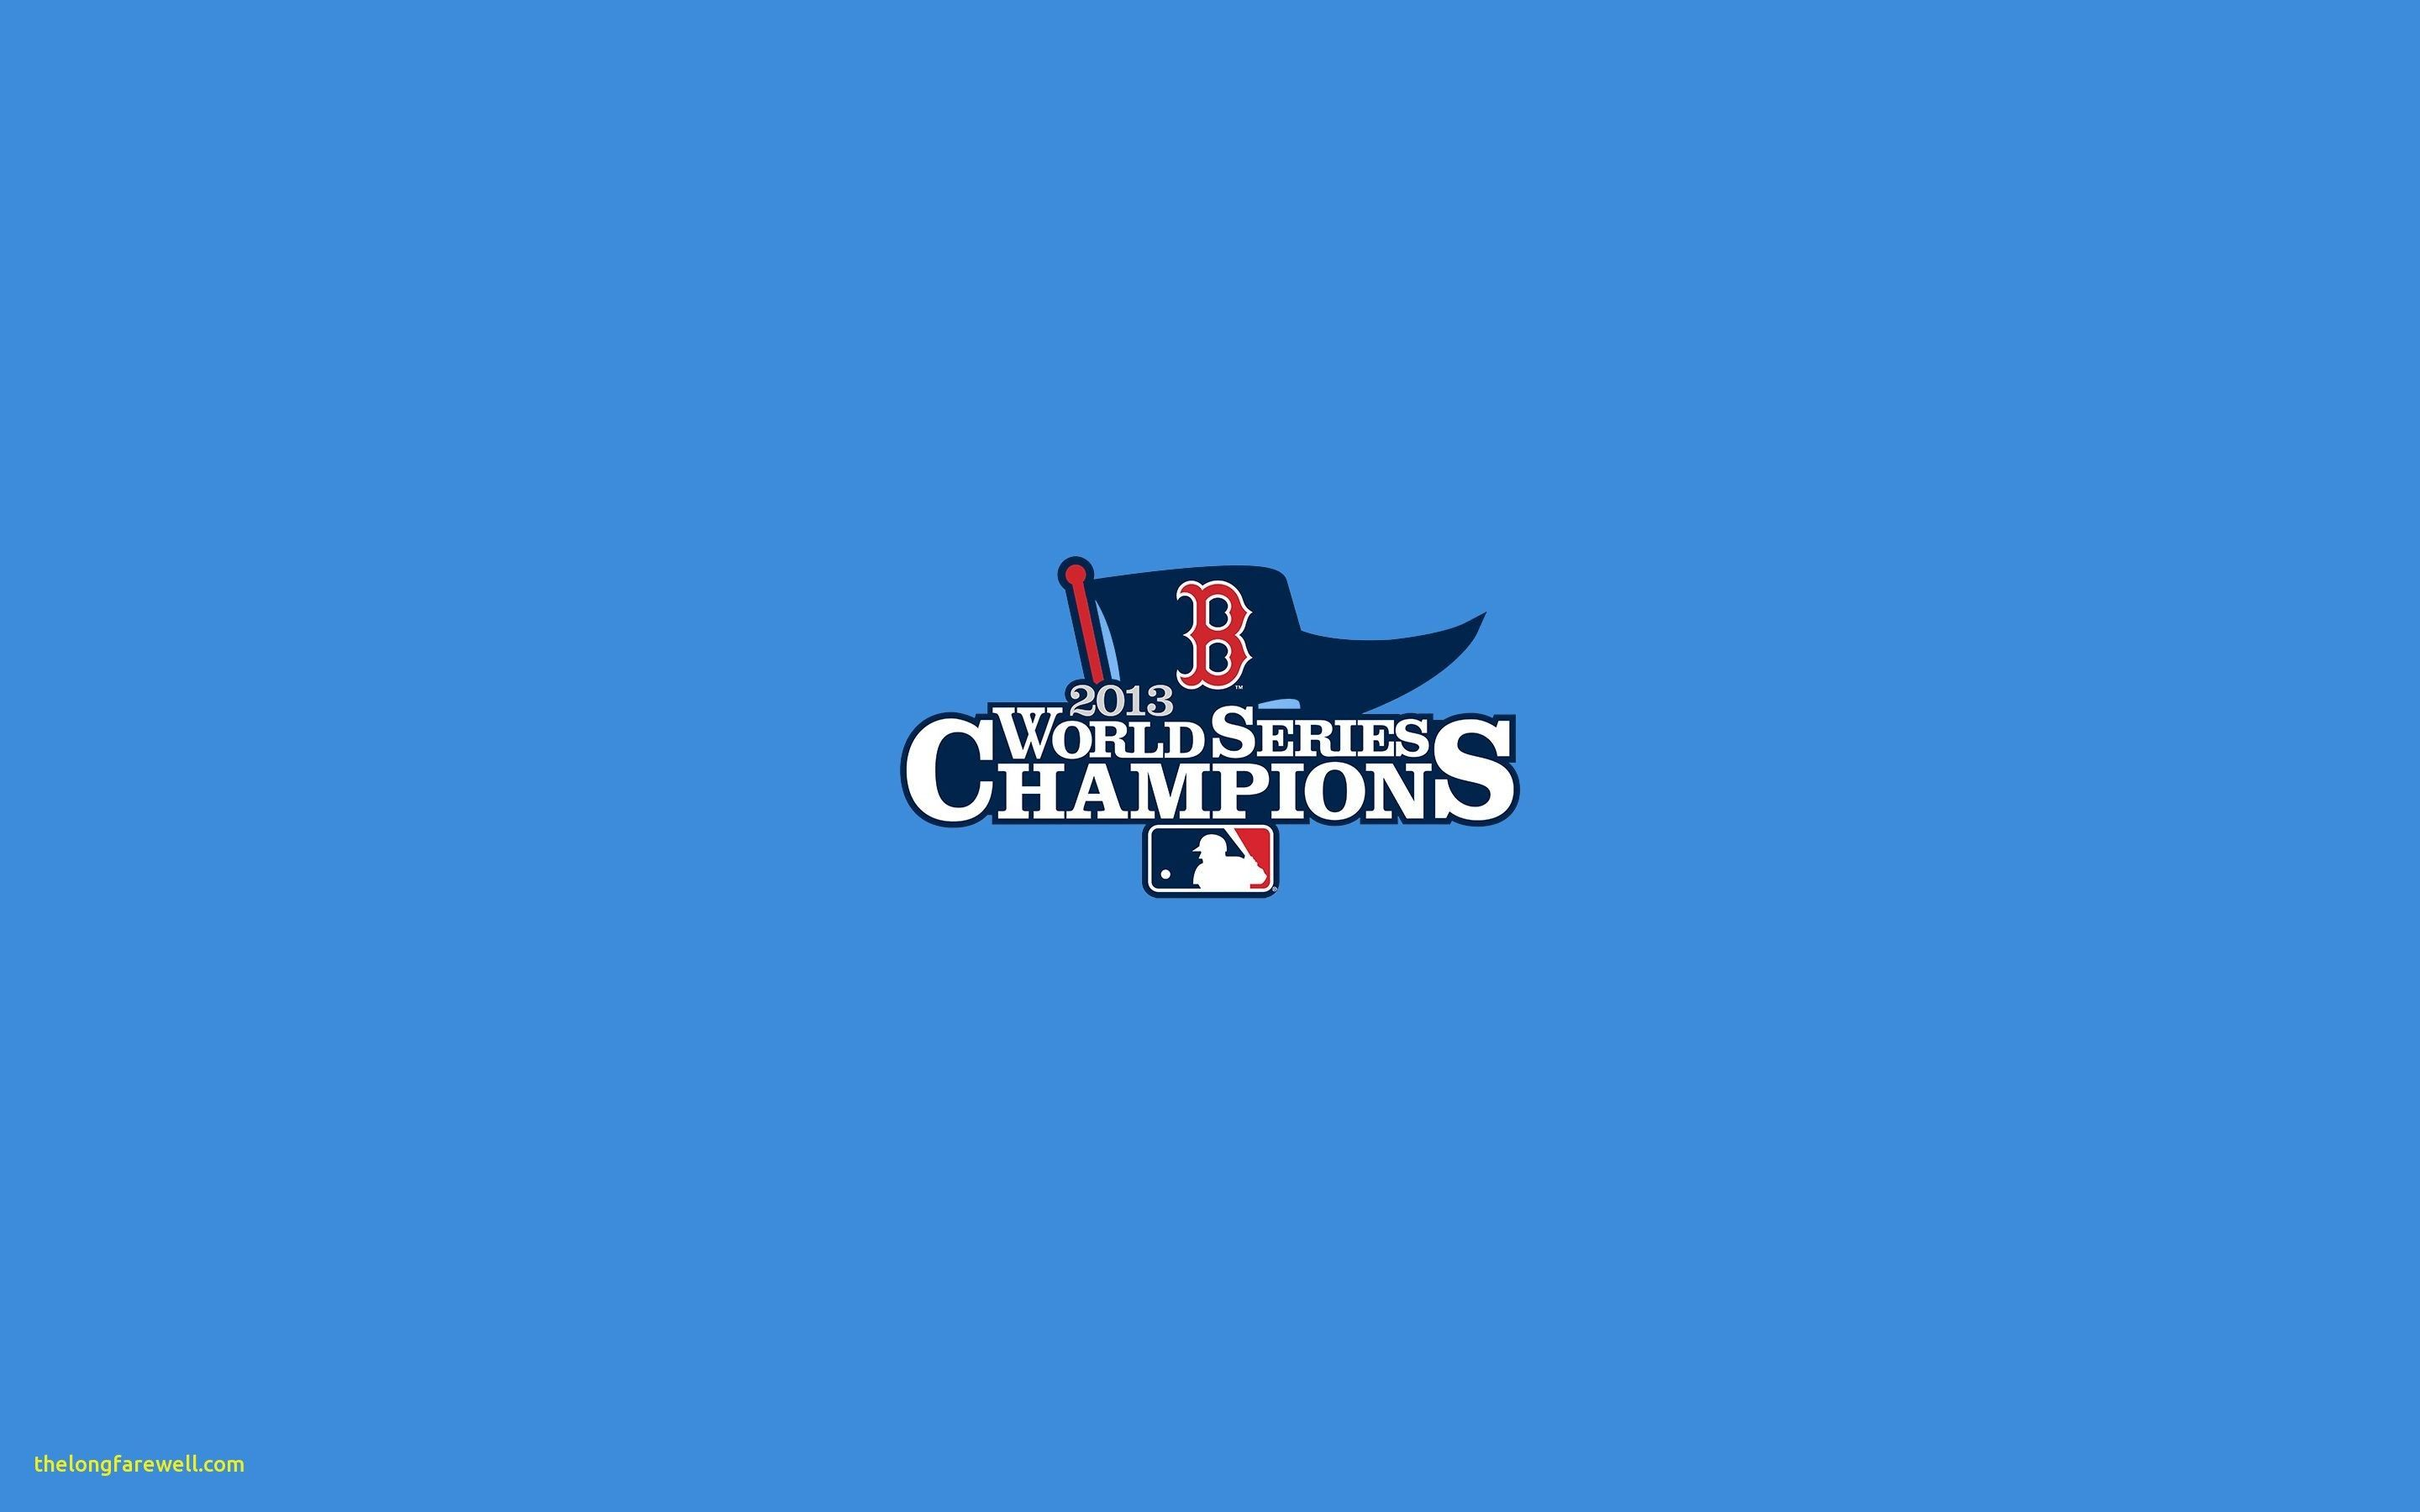 2880x1800 Red Sox World Series Champs Hd Wallpapers Red Sox World Series Boston Red Sox Wallpaper Red Sox Logo